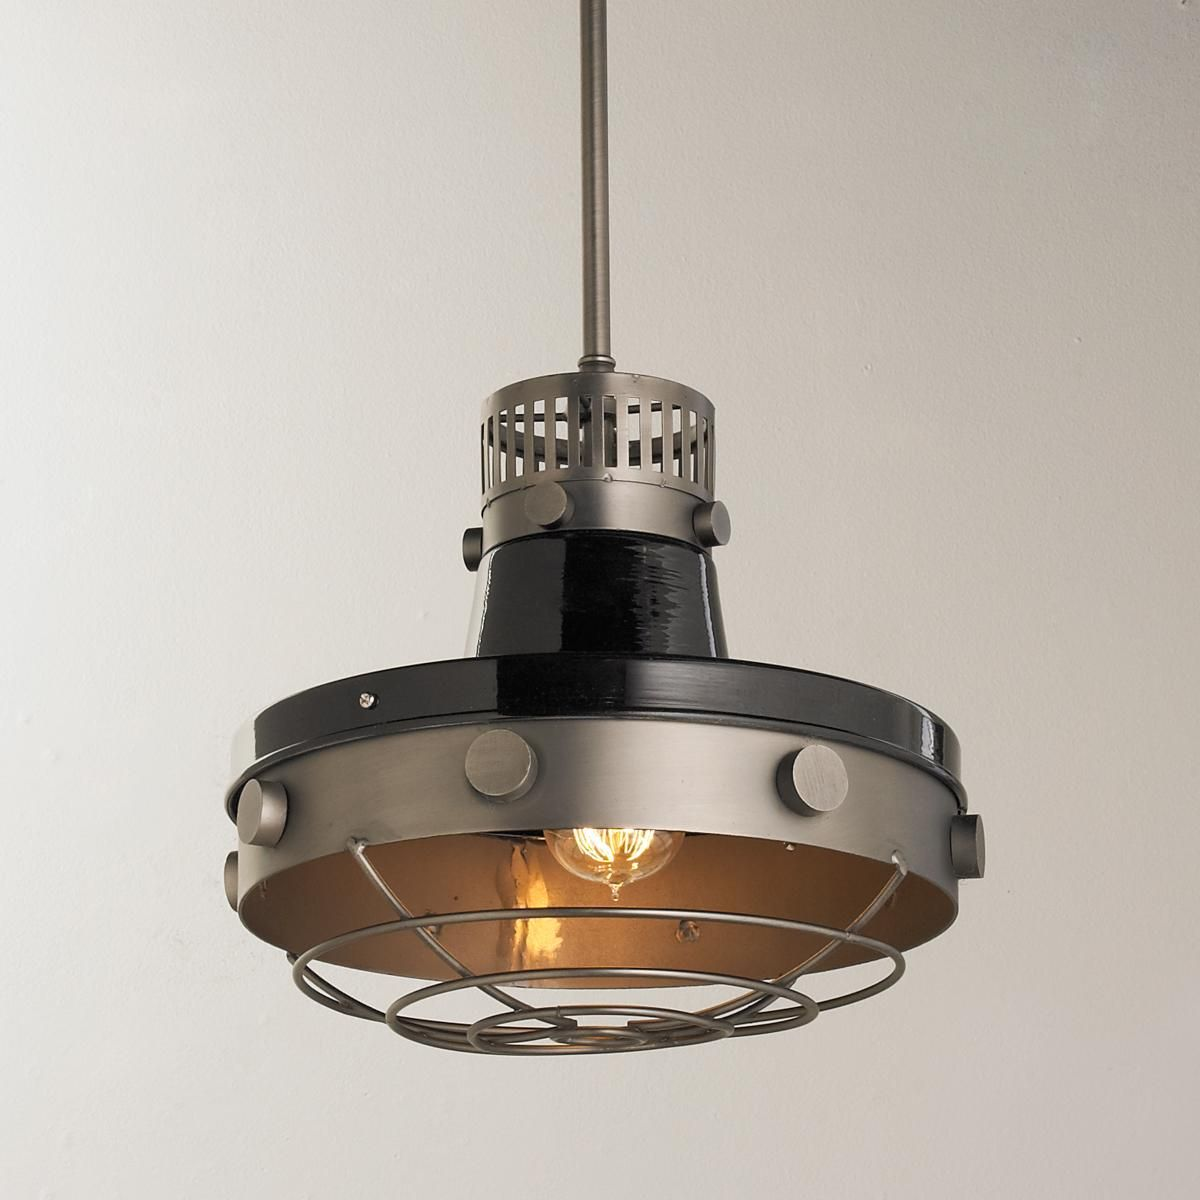 Bolted Industrial Warehouse Pendant Bolts Gages Cages And Steel